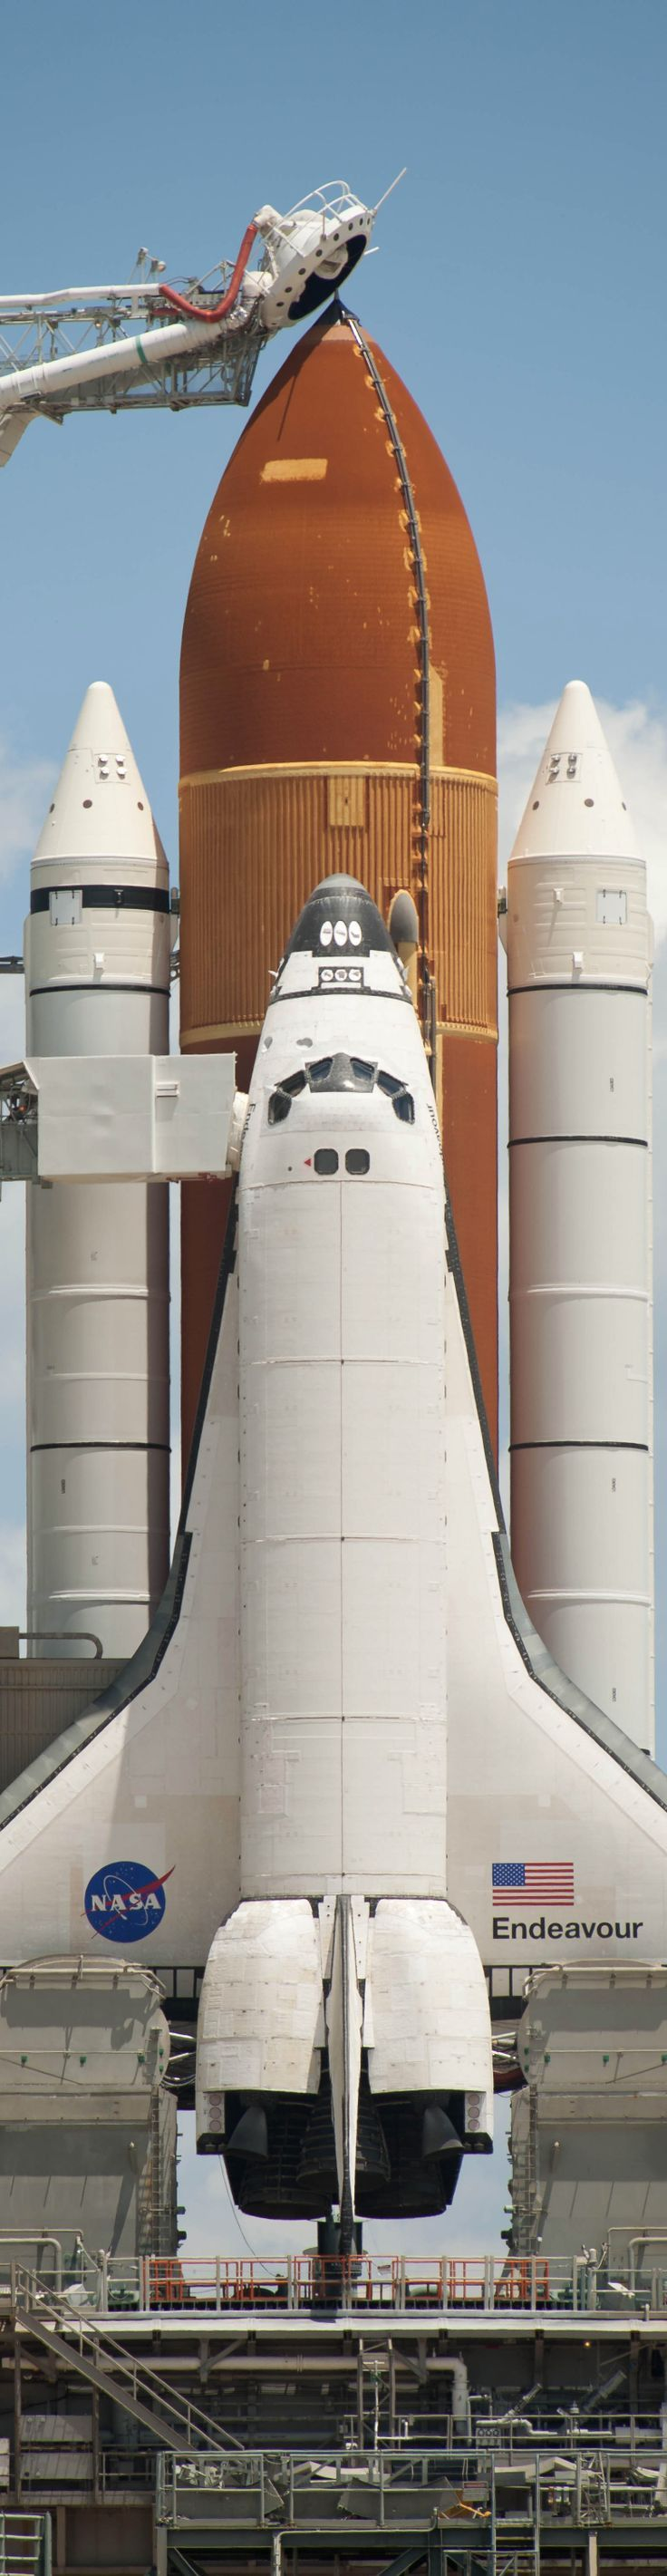 Space Shuttle. Cosmic. Cosmic, outer space and astro pictures Pixodium - Selected pictures blog organized in thematic feeds. All images on this website are found in internet and presented with reference link to the source..